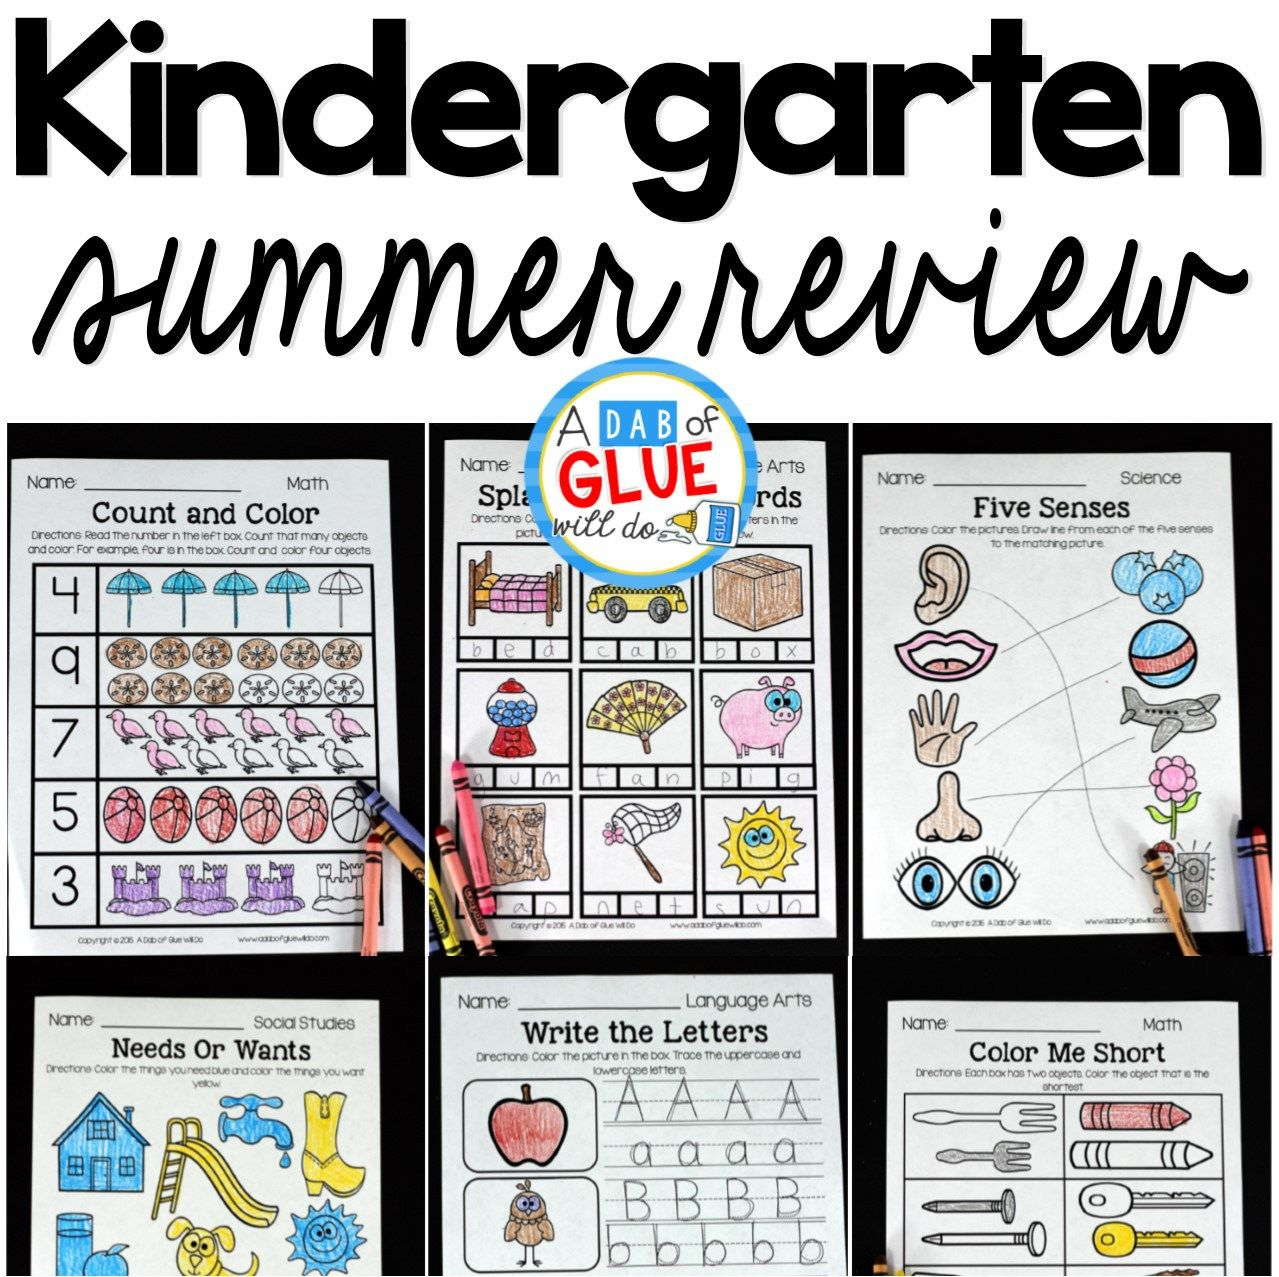 The perfect NO PREP Kindergarten Summer Review to help your kindergarten students with hands-on learning over summer break! Give your students going into First Grade fun review printables to help prevent the summer slide and set them up for First Grade success. This review is packed full of engaging homework review activities that will bring a smile to their sweet faces as they work on math, language arts, social studies, and science! Parents will enjoy the student's focus on summer homework…